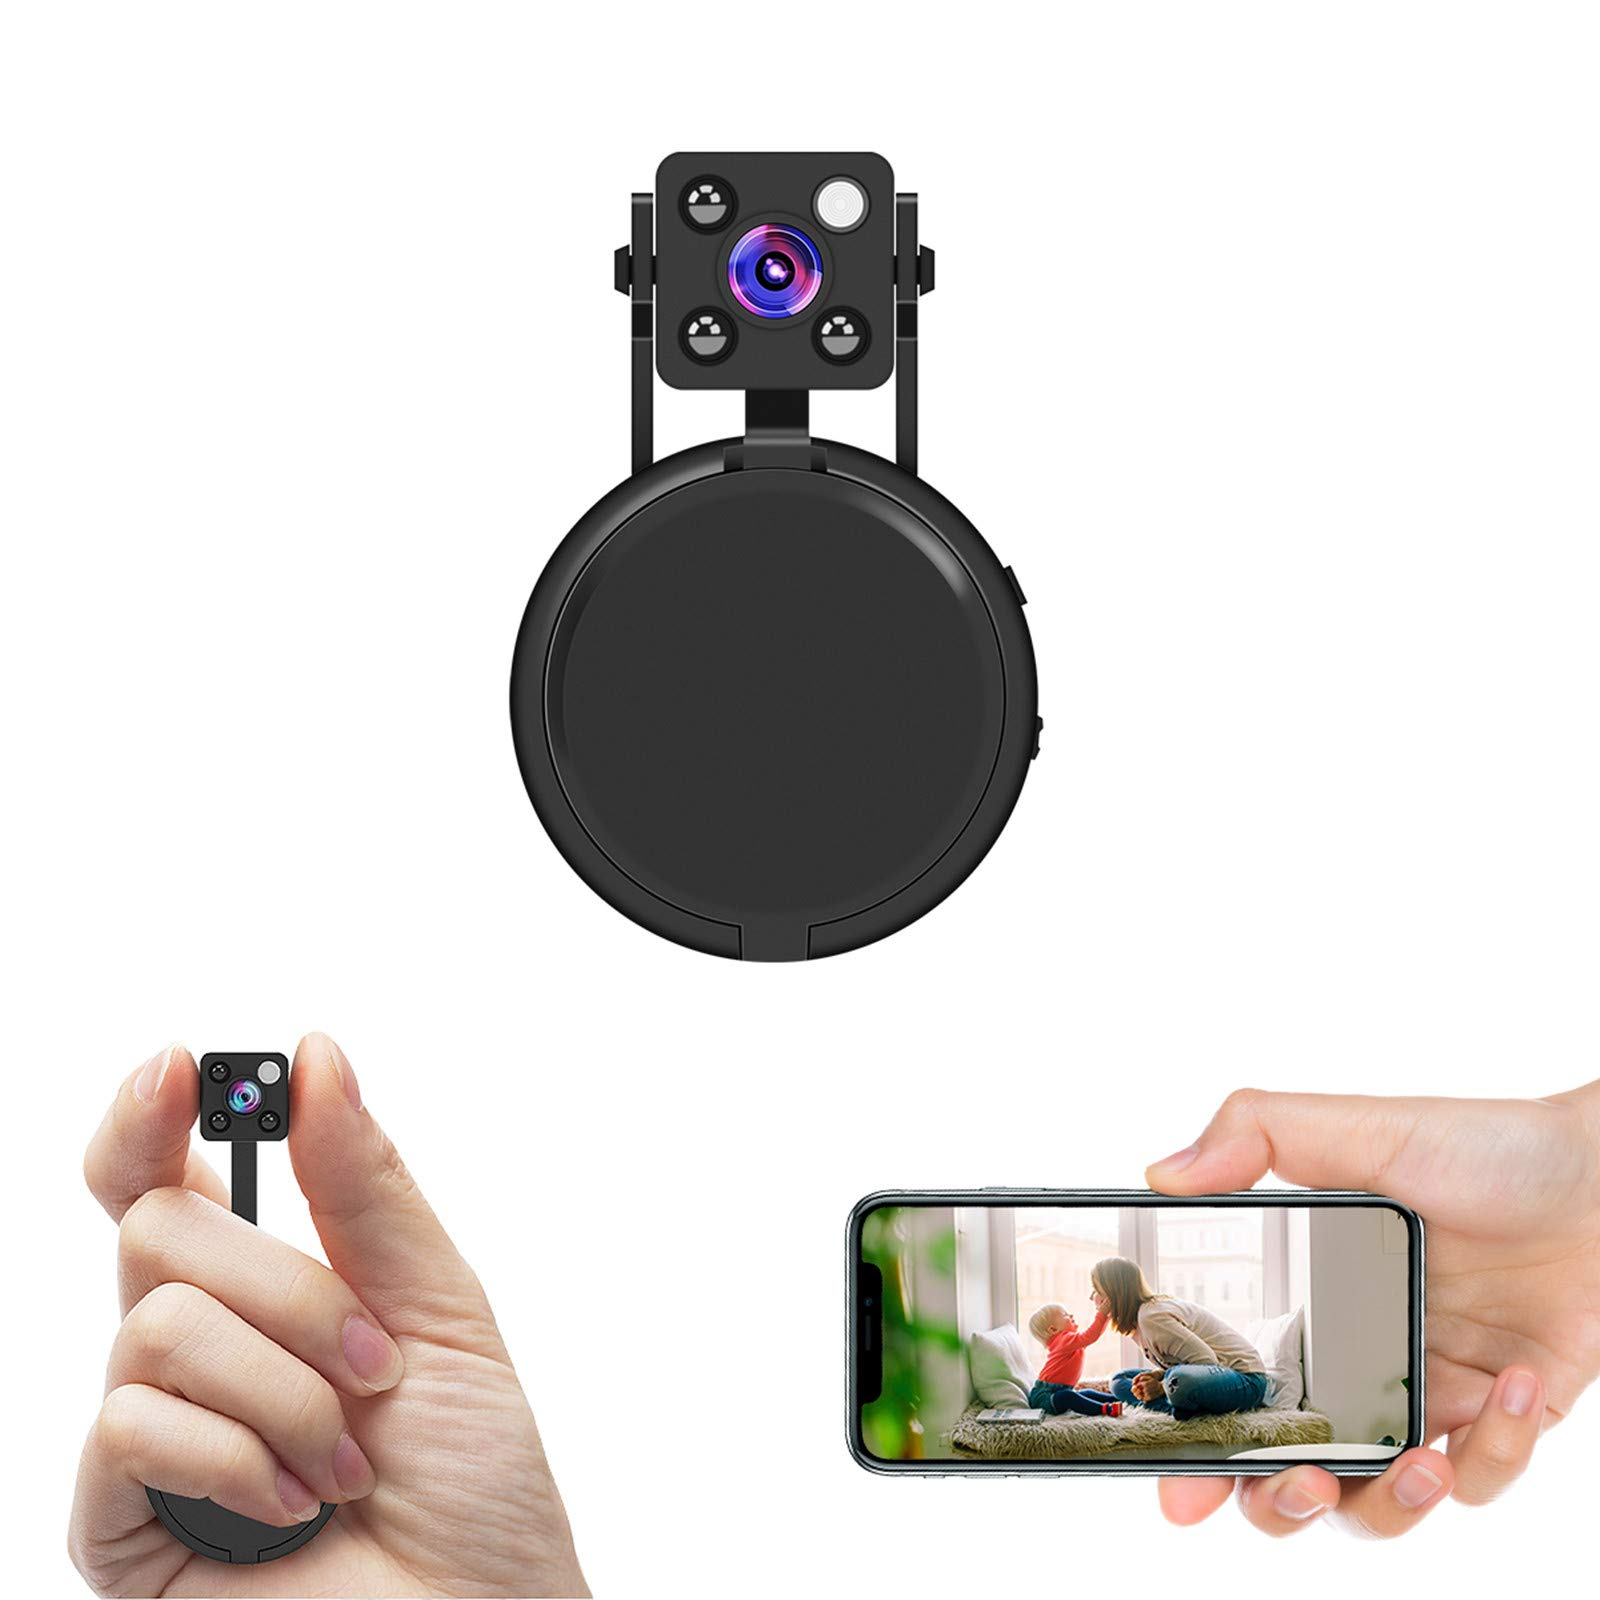 HD 1080P Mini Spy Hidden Camera ,Mini Hidden WiFi Camera with Wireless Live Streaming,Hidden Camera WiFi with Motion Detection and Night Vision(with Free APP) (Black)